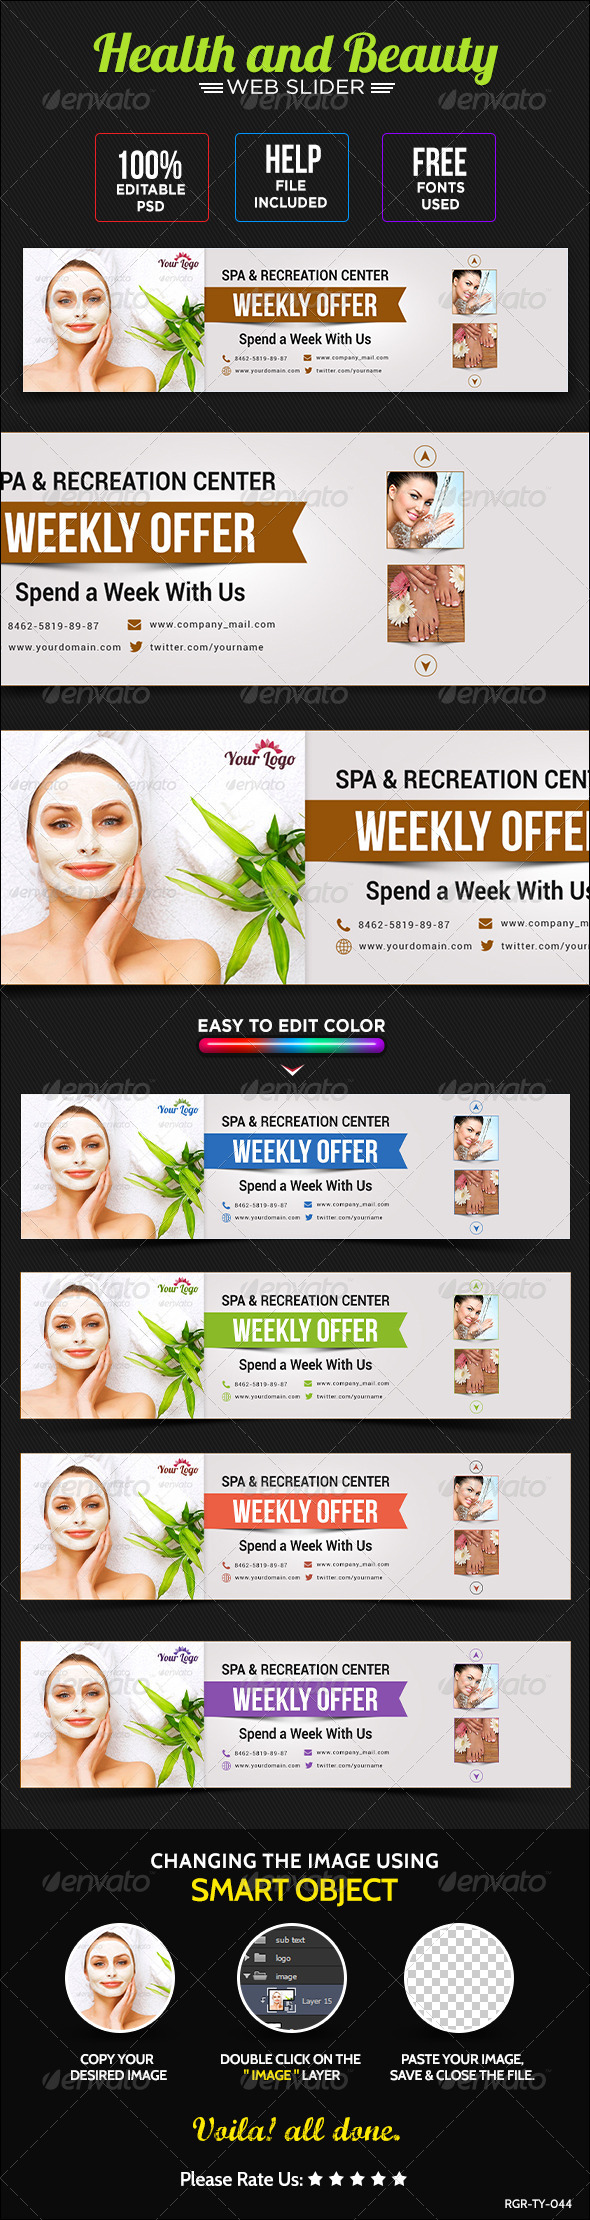 GraphicRiver Health & Beauty Sliders 8720269